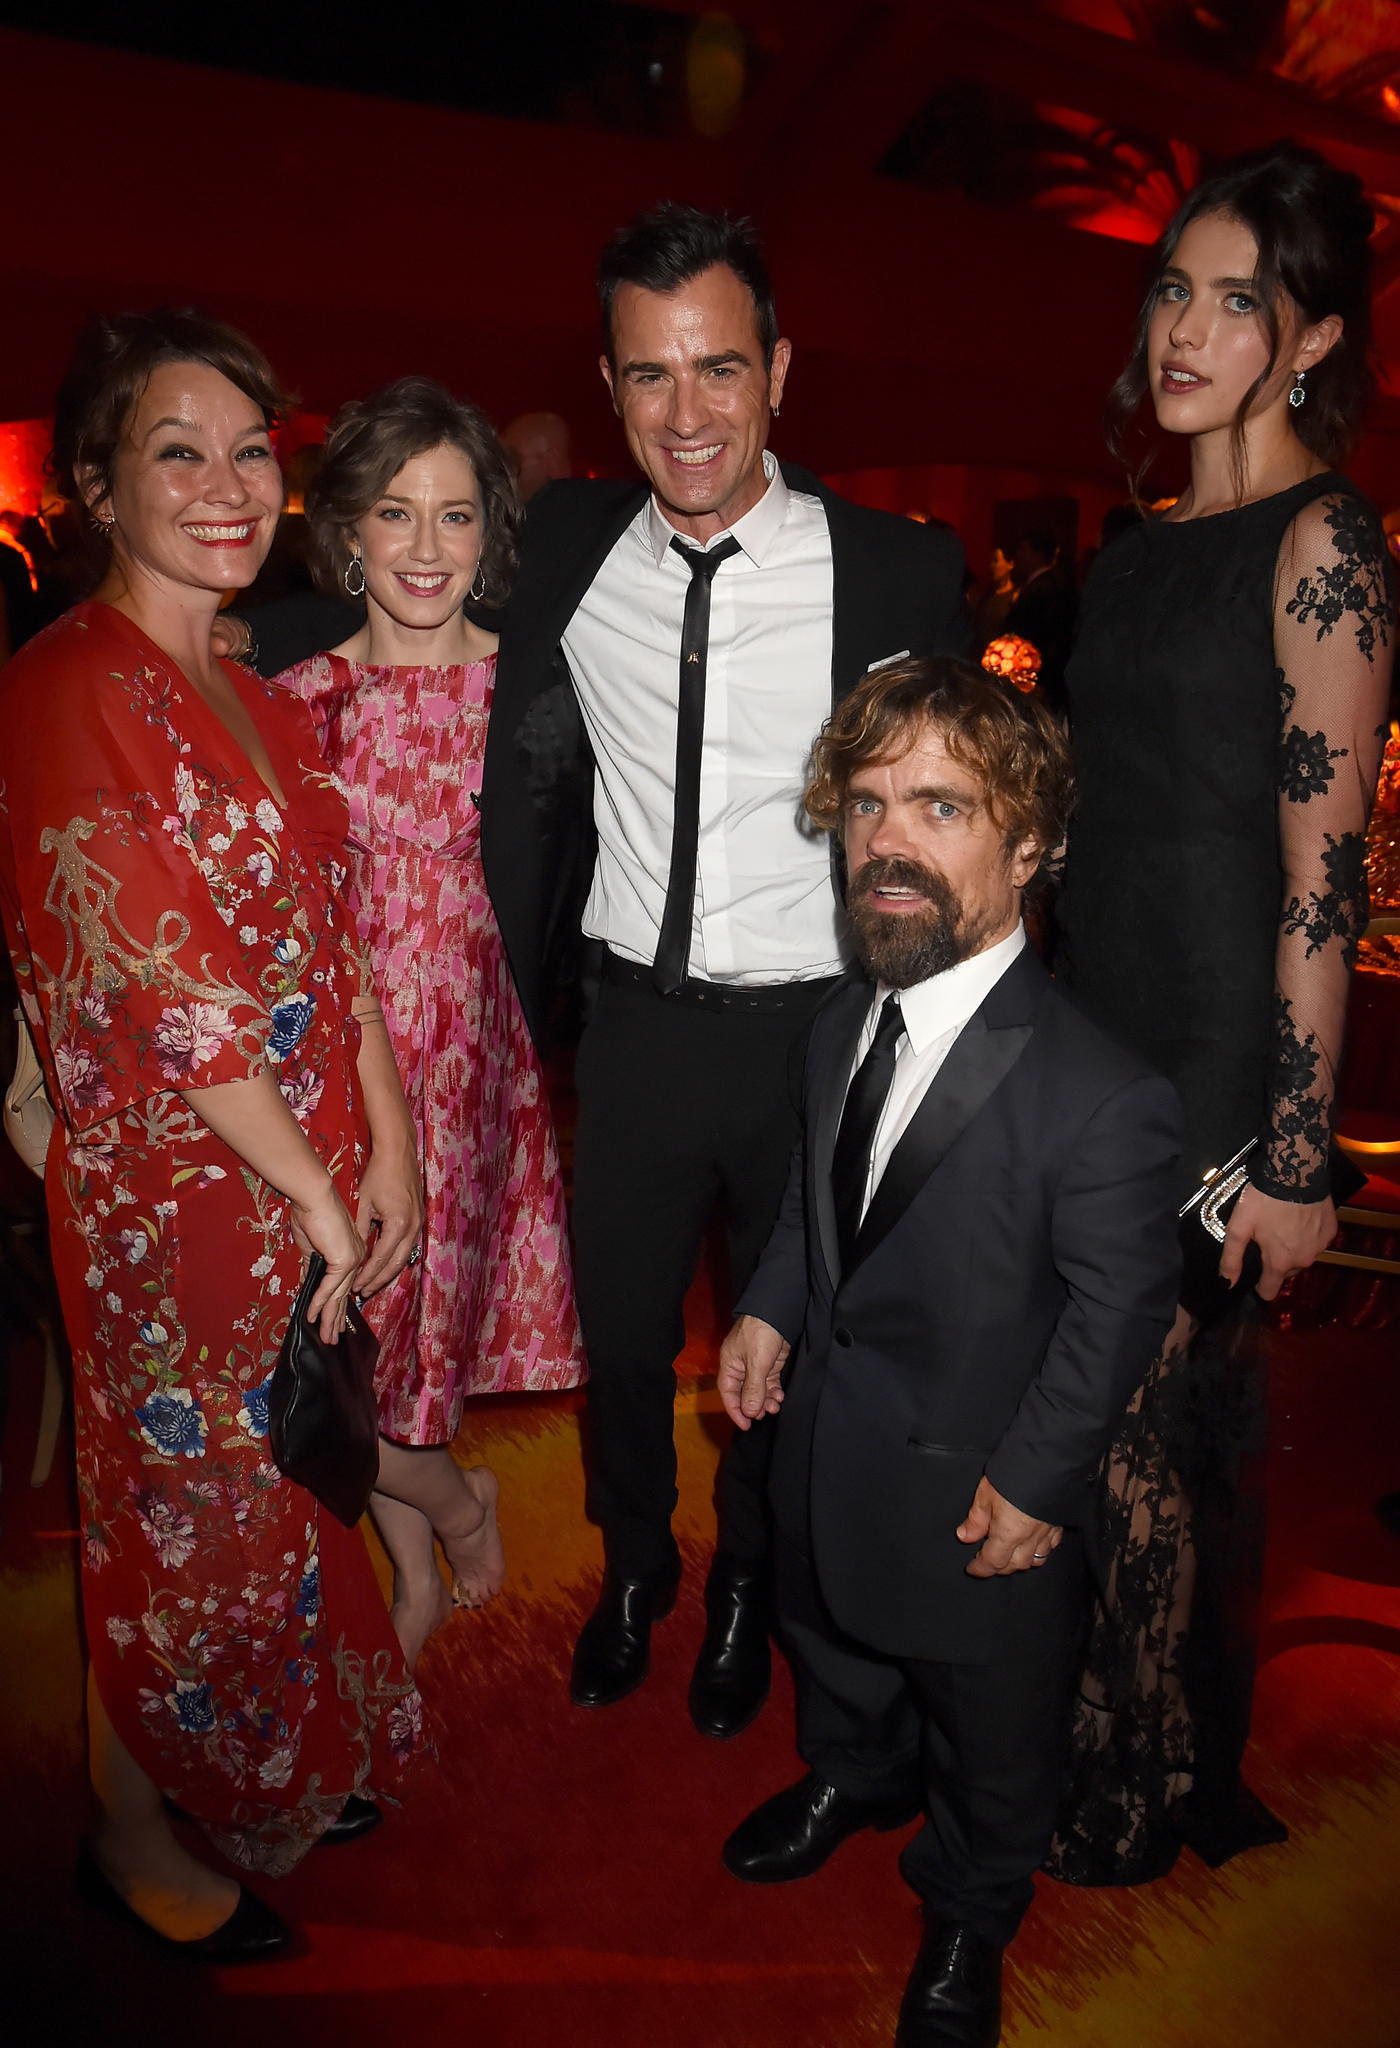 Peter Dinklage, Justin Theroux, Erica Schmidt, Carrie Coon and Margaret Qualley at event of The 67th Primetime Emmy Awards (2015)